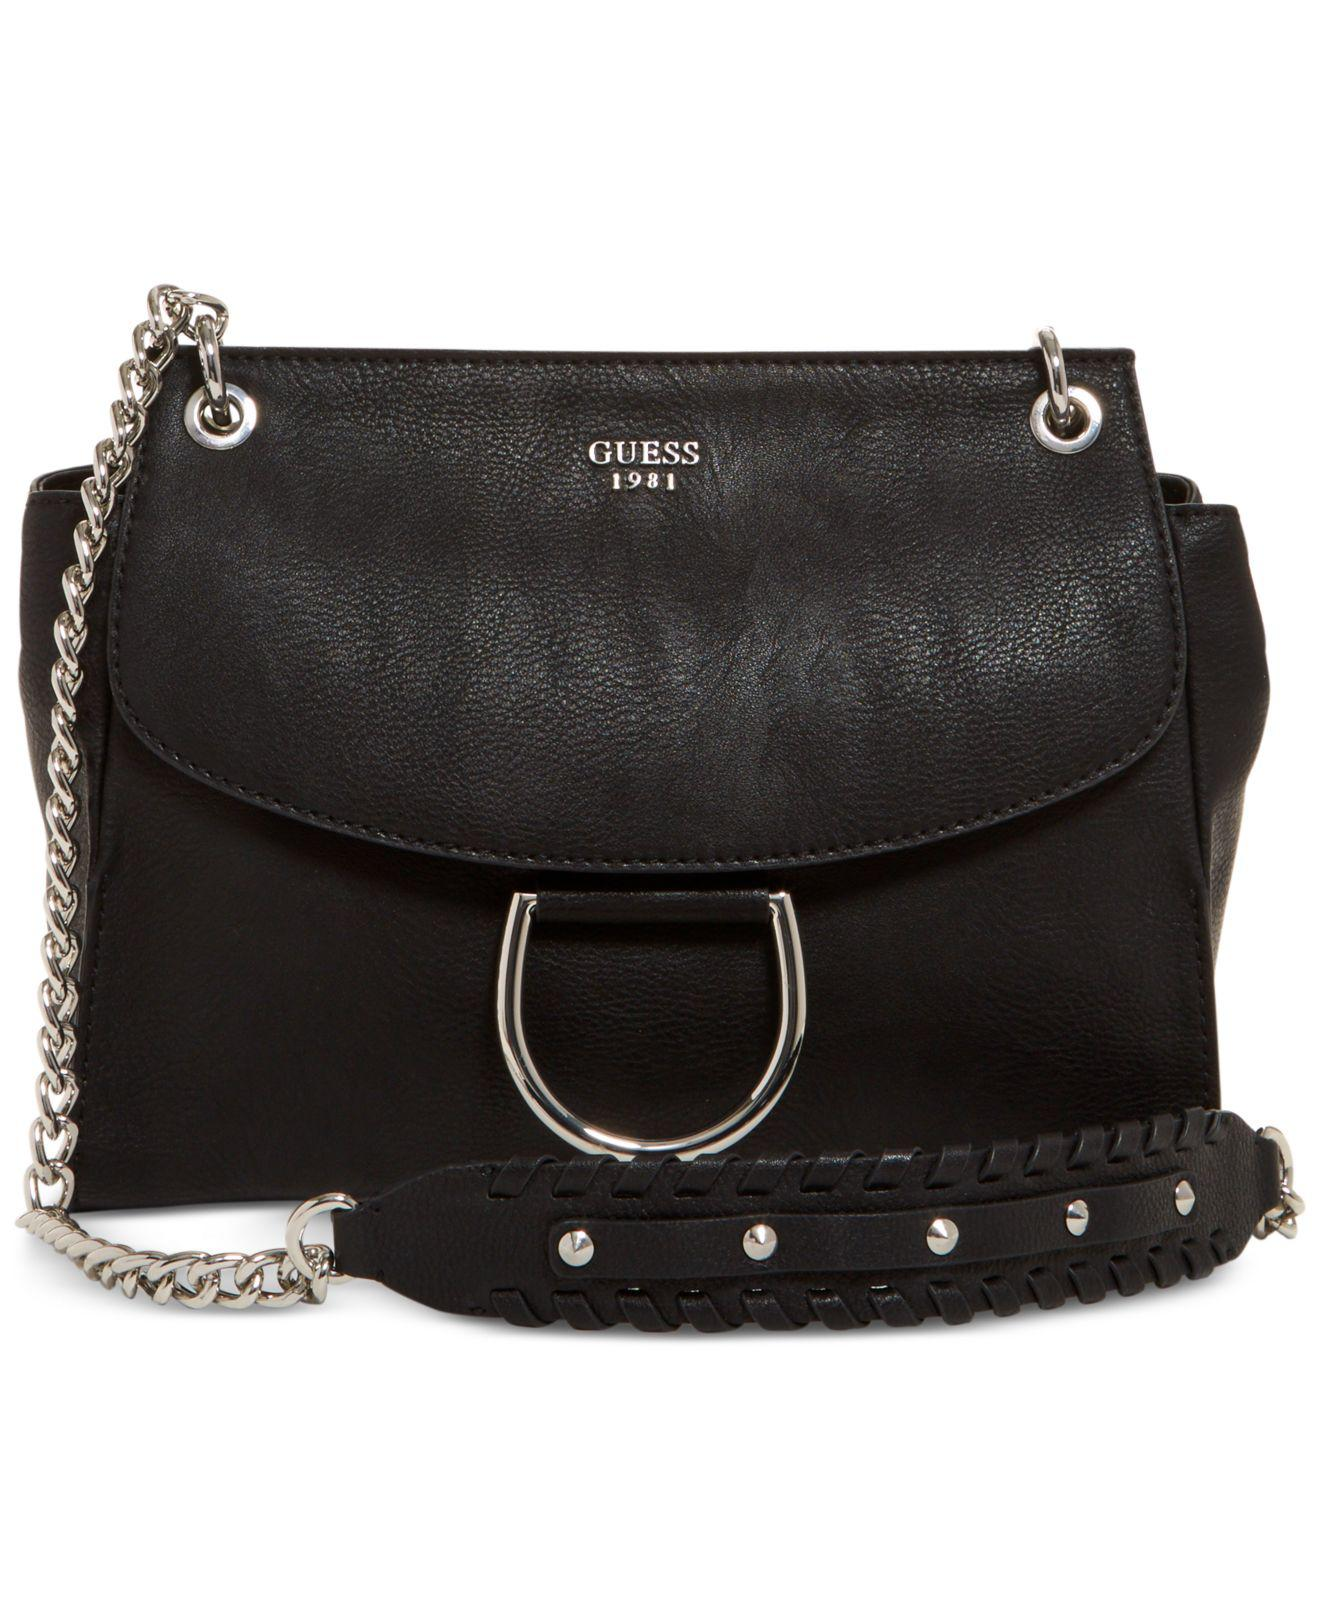 9c6fce64b1 Lyst - Guess Fynn Small Flap Crossbody in Black